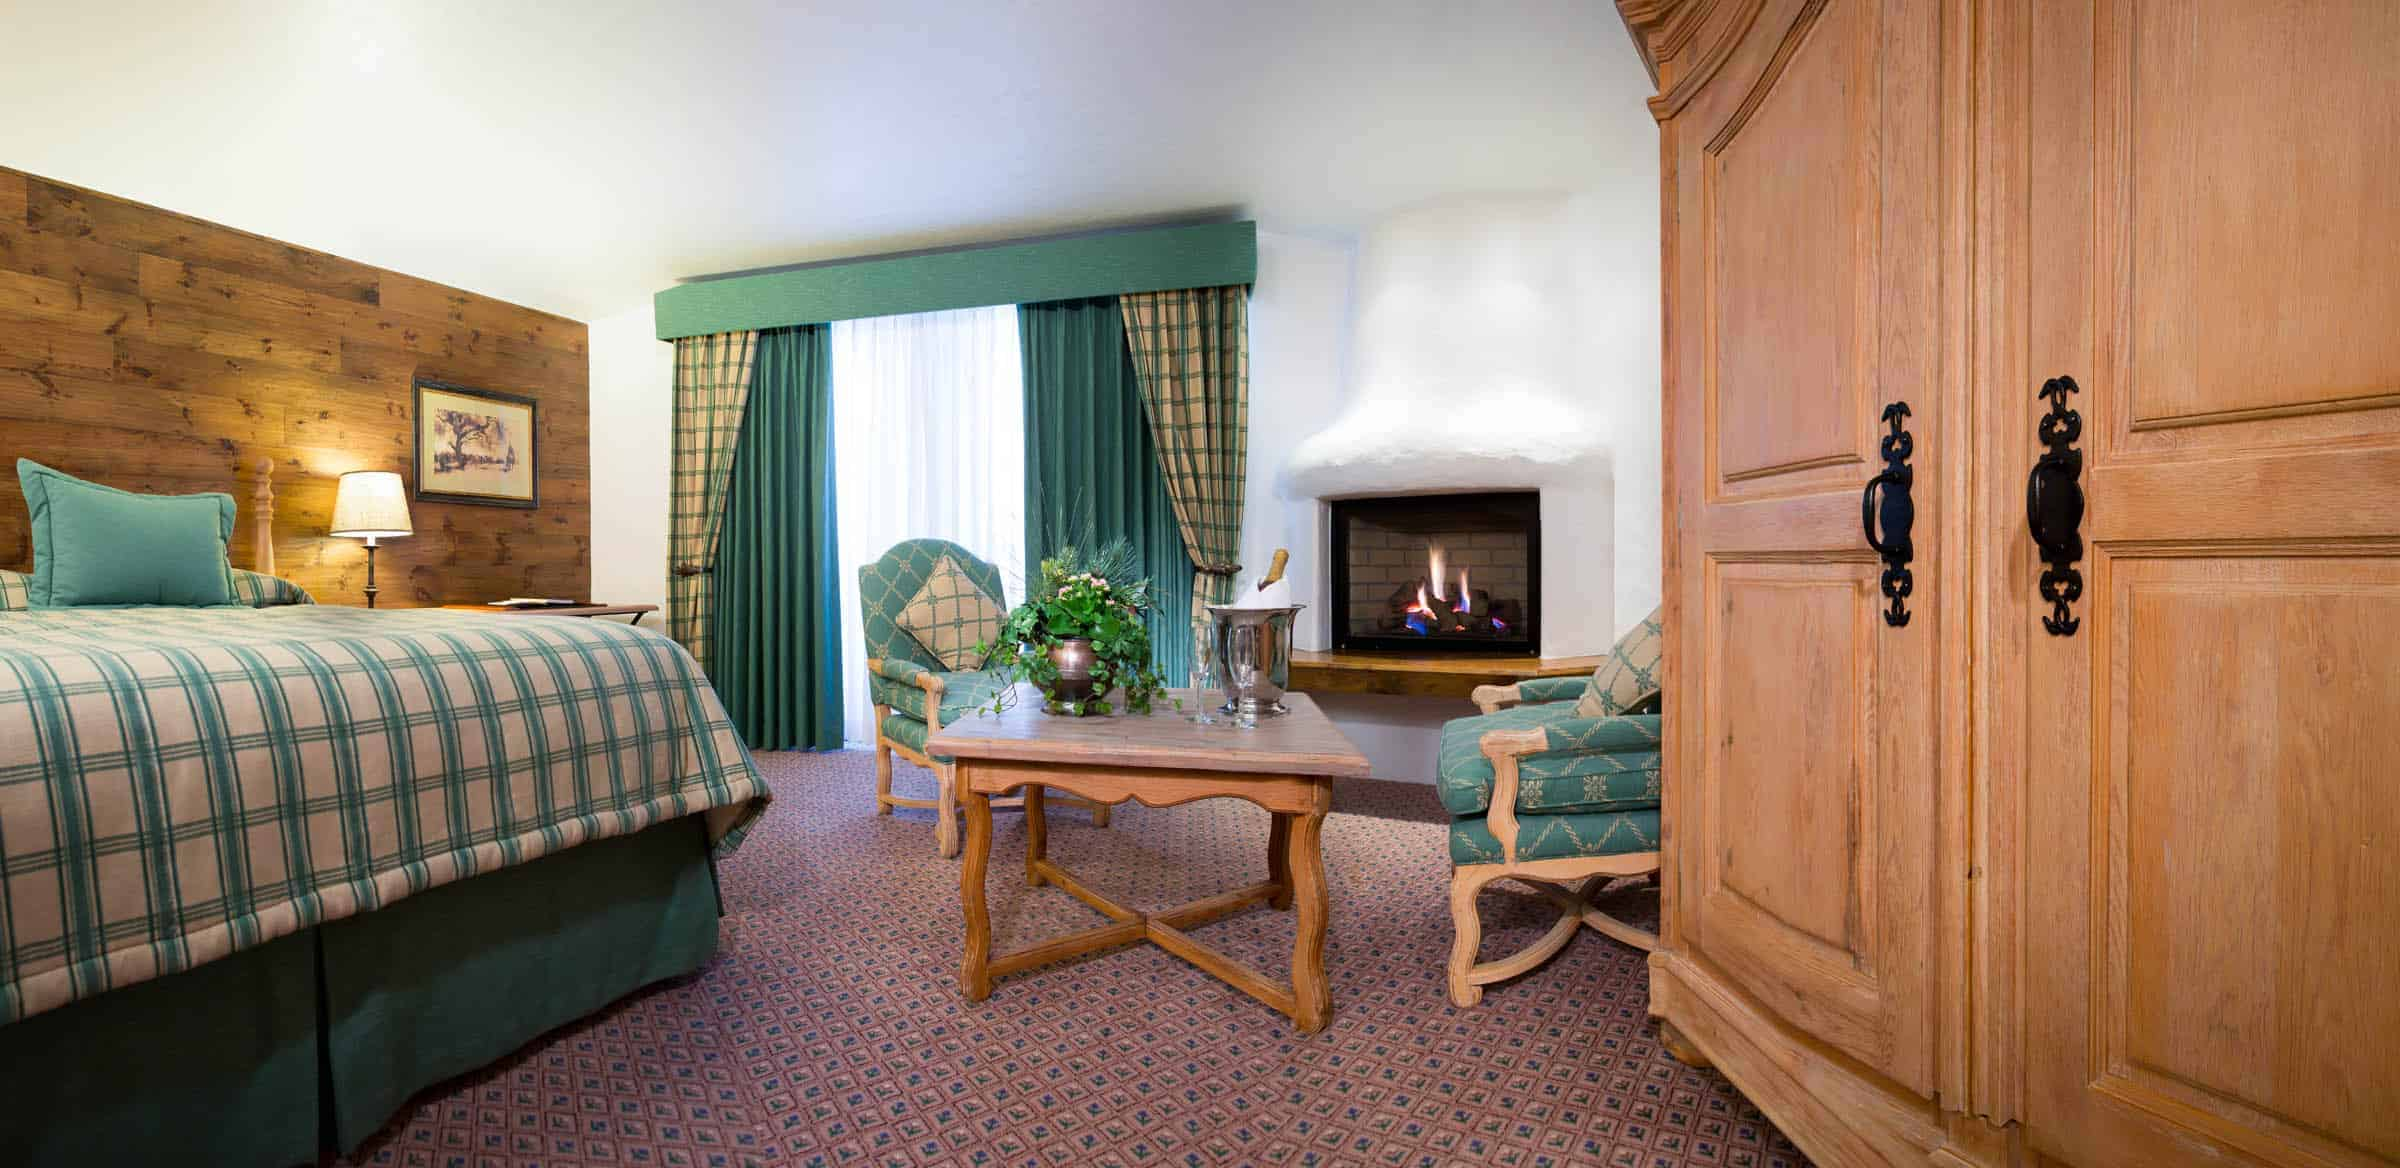 lodgepole jr suite with bed, chairs, table, and large dresser